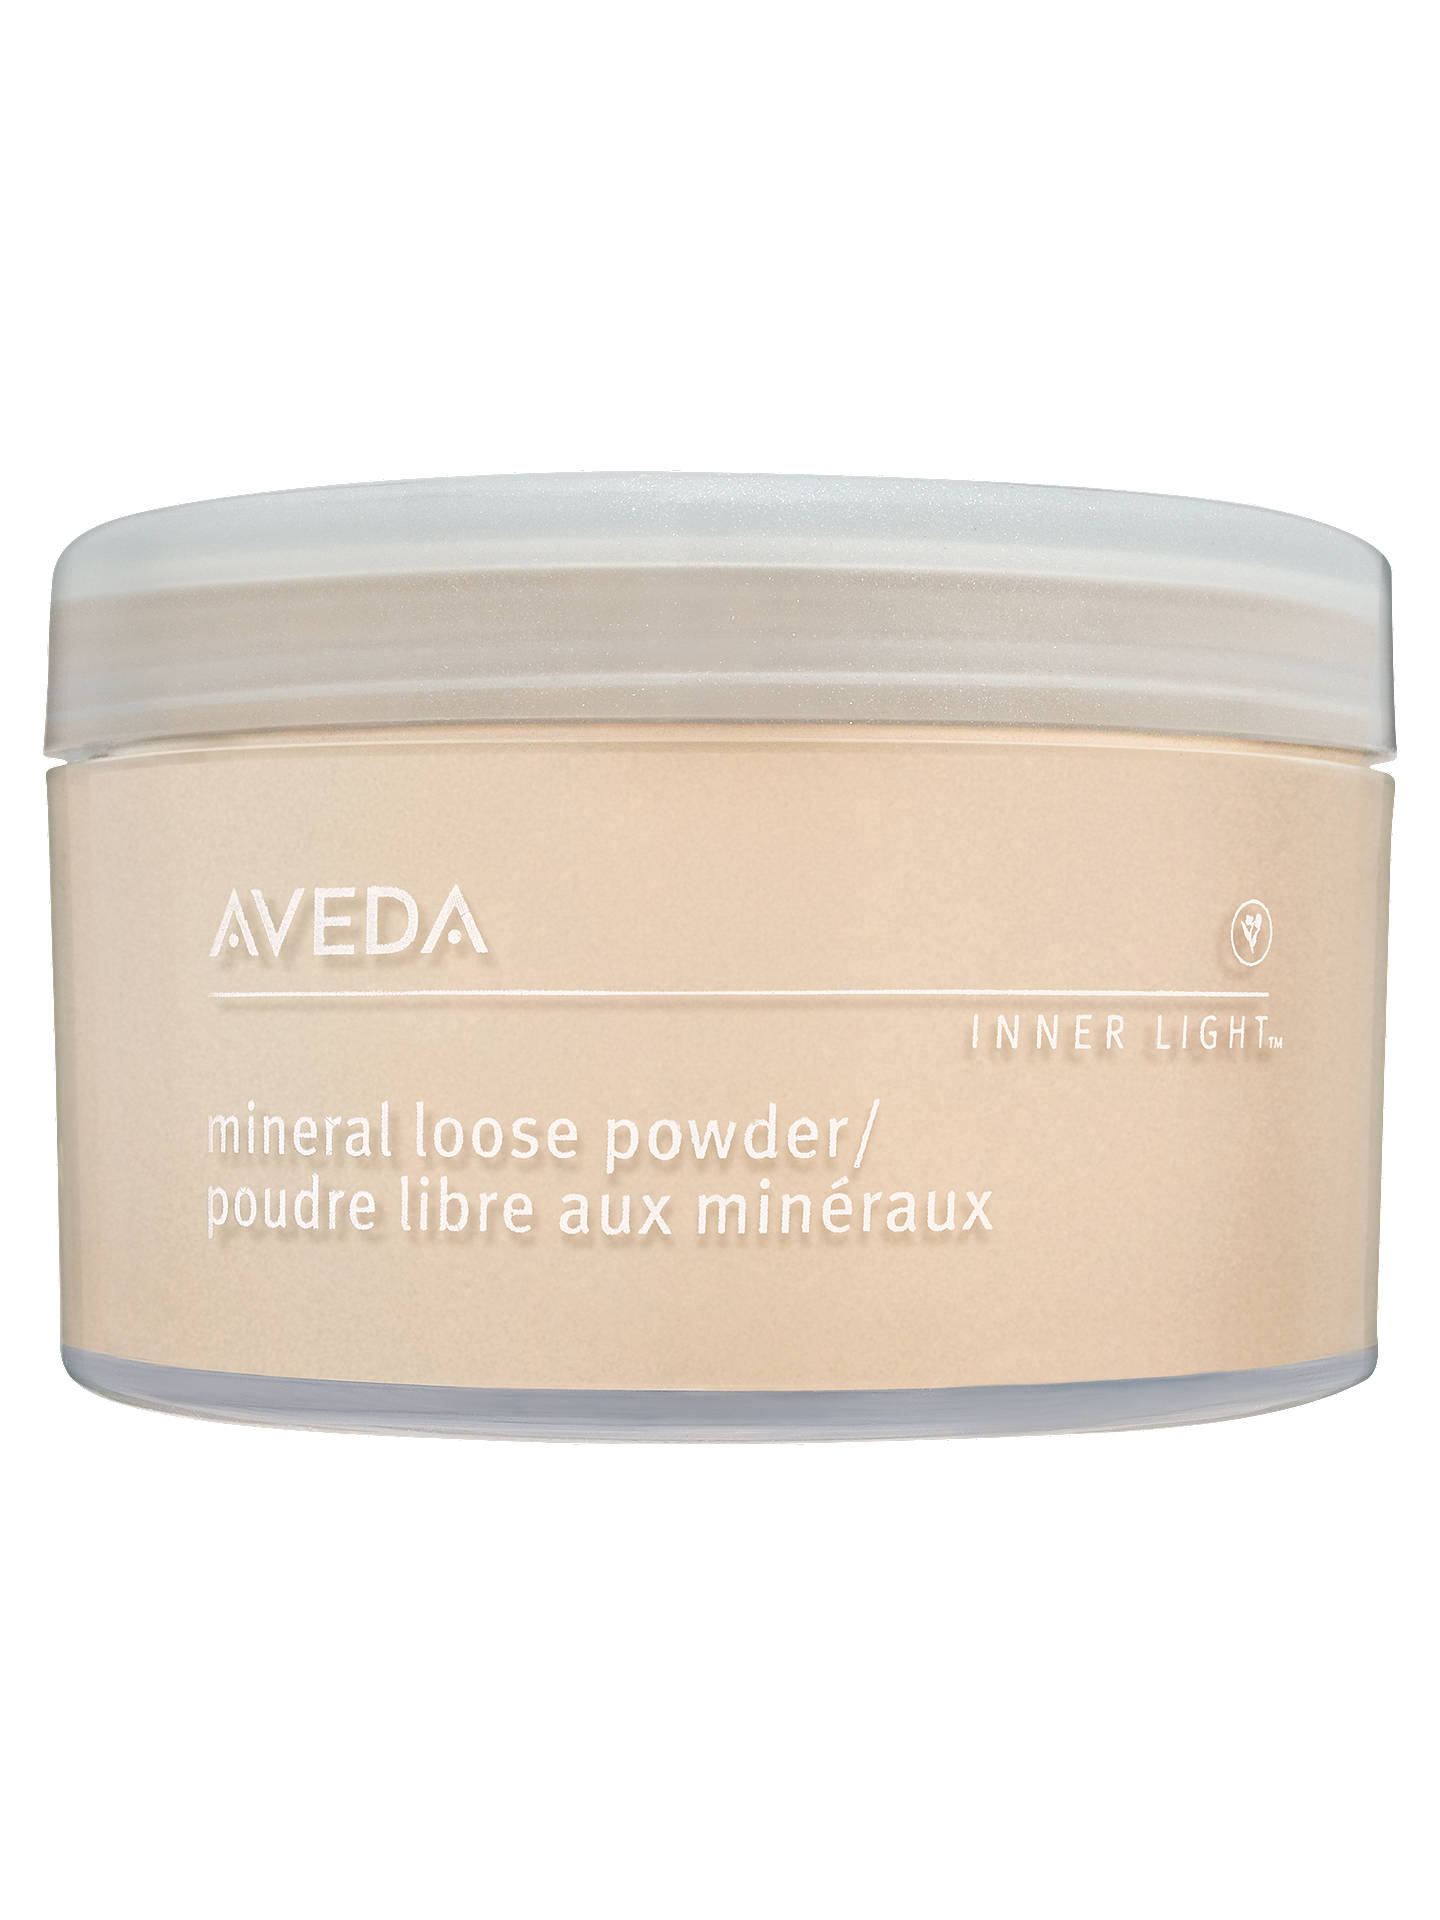 BuyAVEDA Inner Light™ Mineral Loose Powder, 20g Online at johnlewis.com